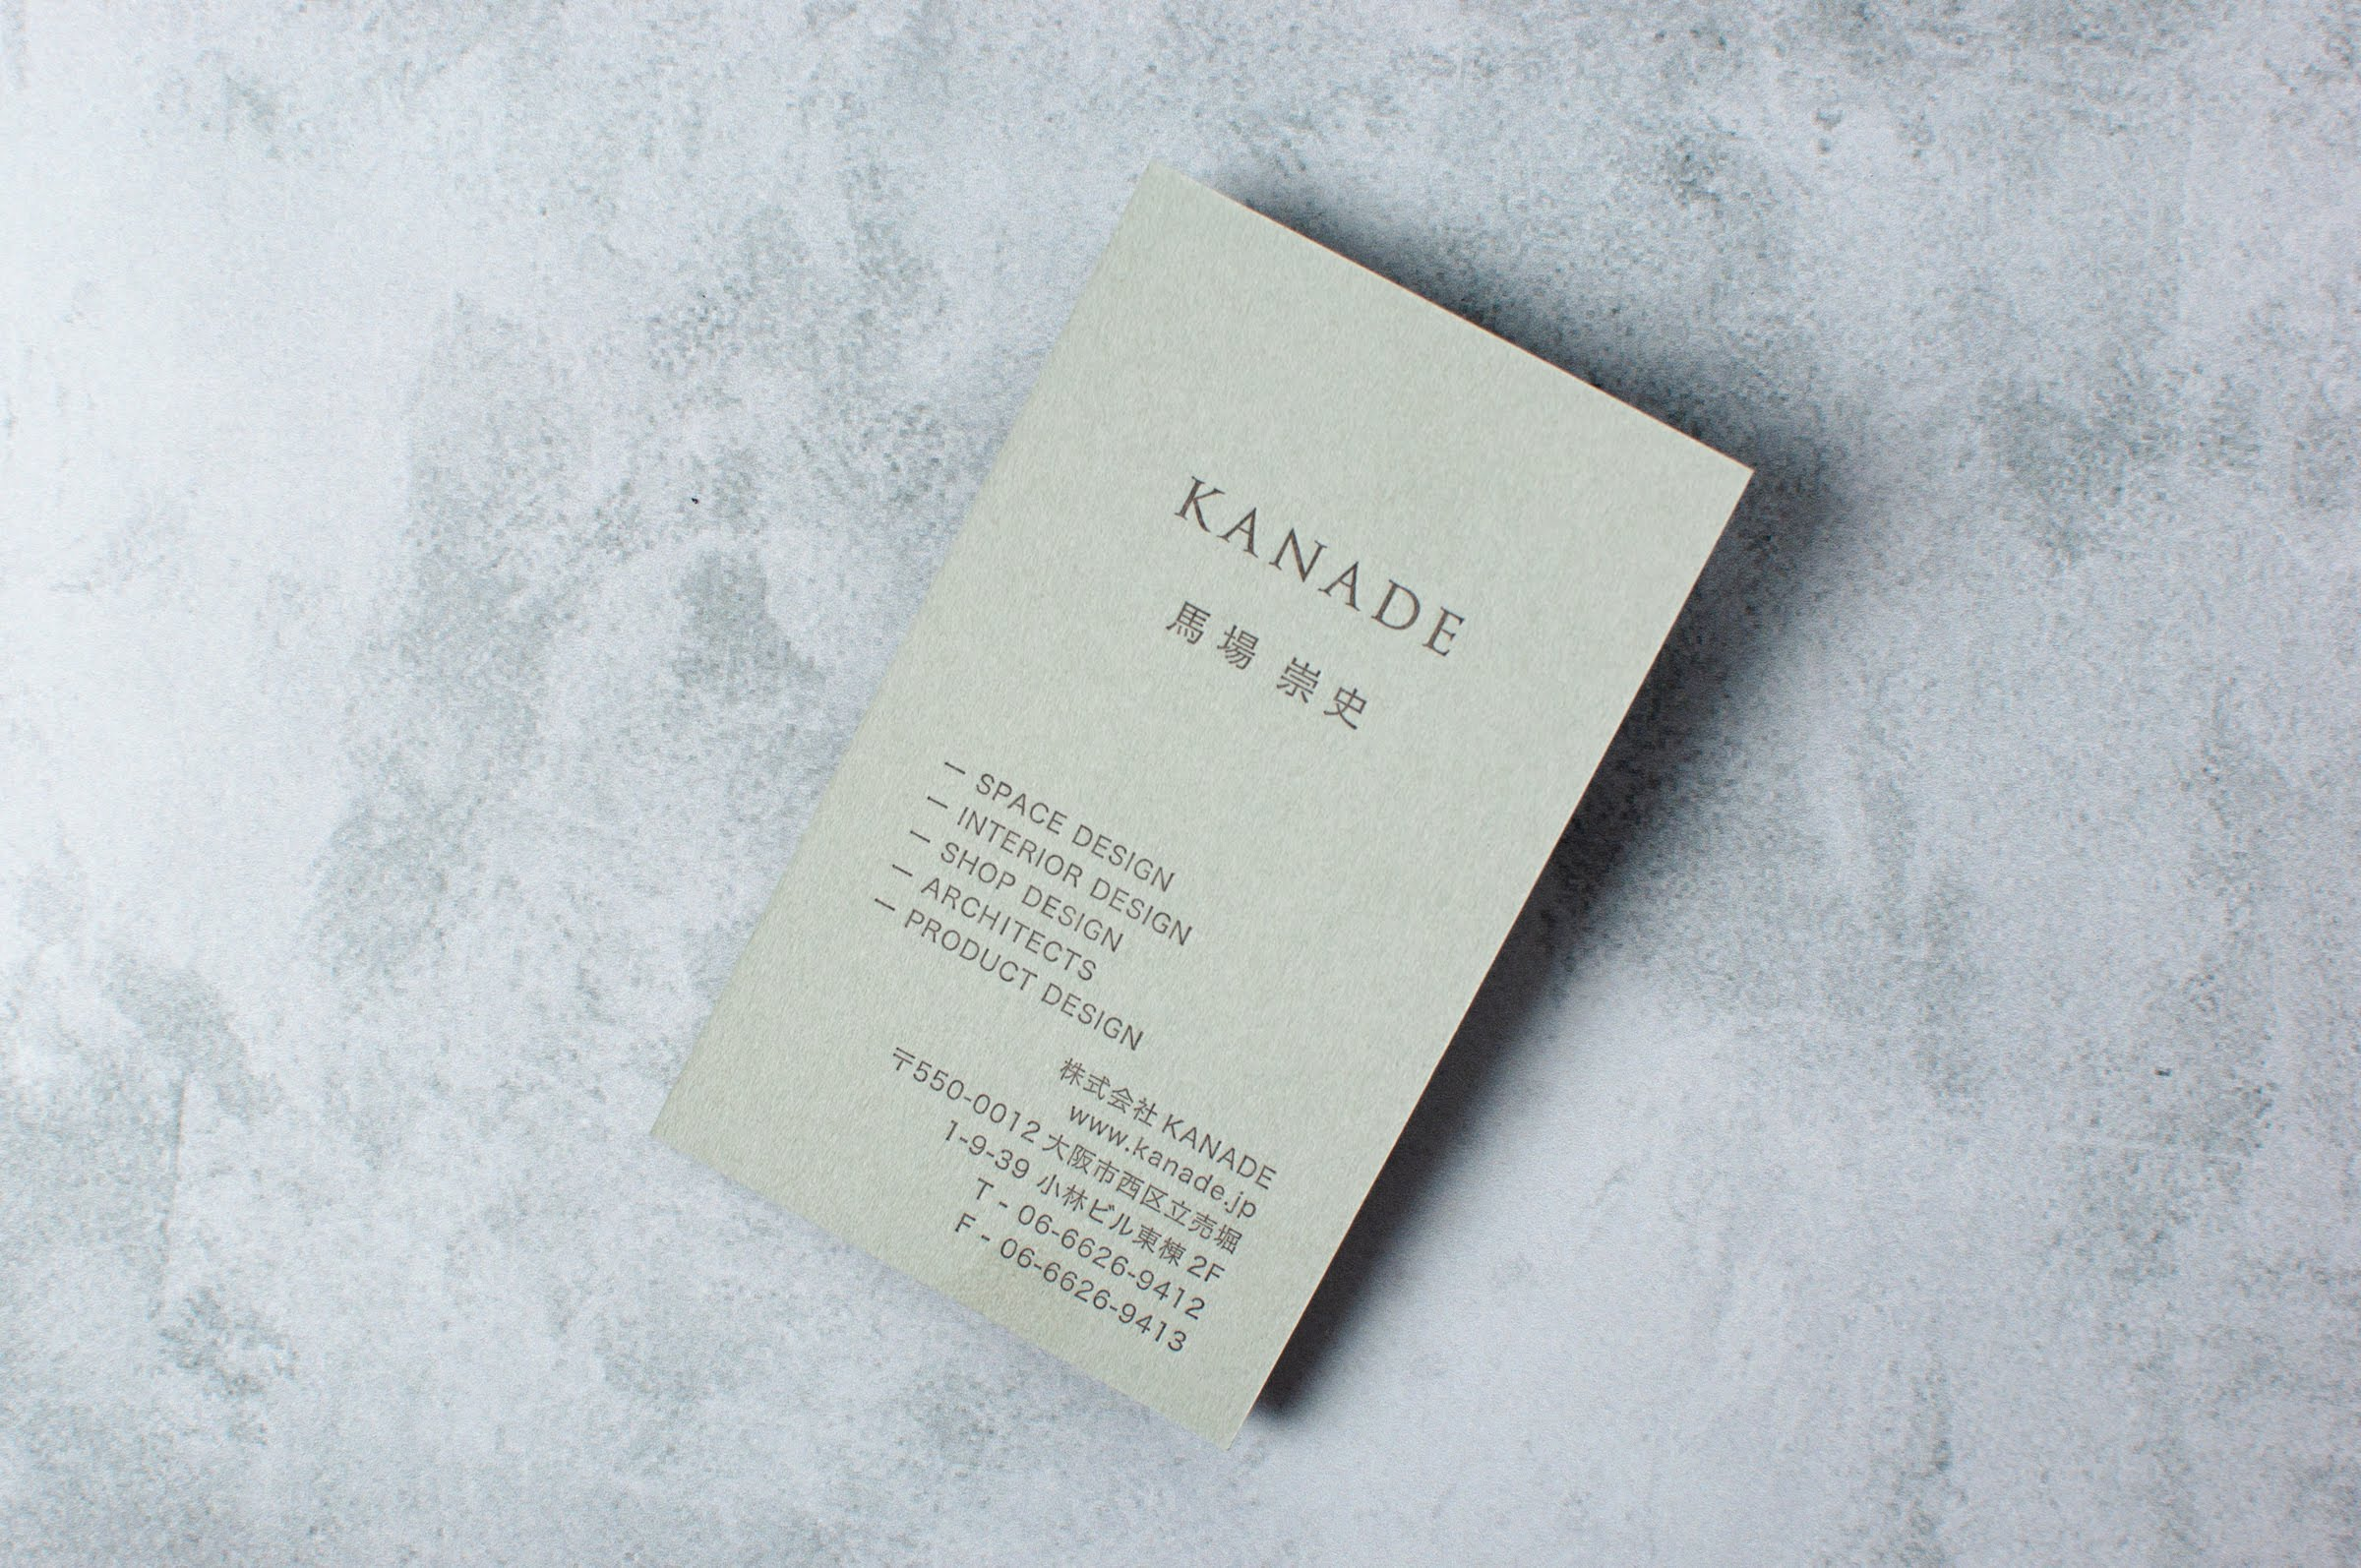 KANADE Inc.|NAME CARD